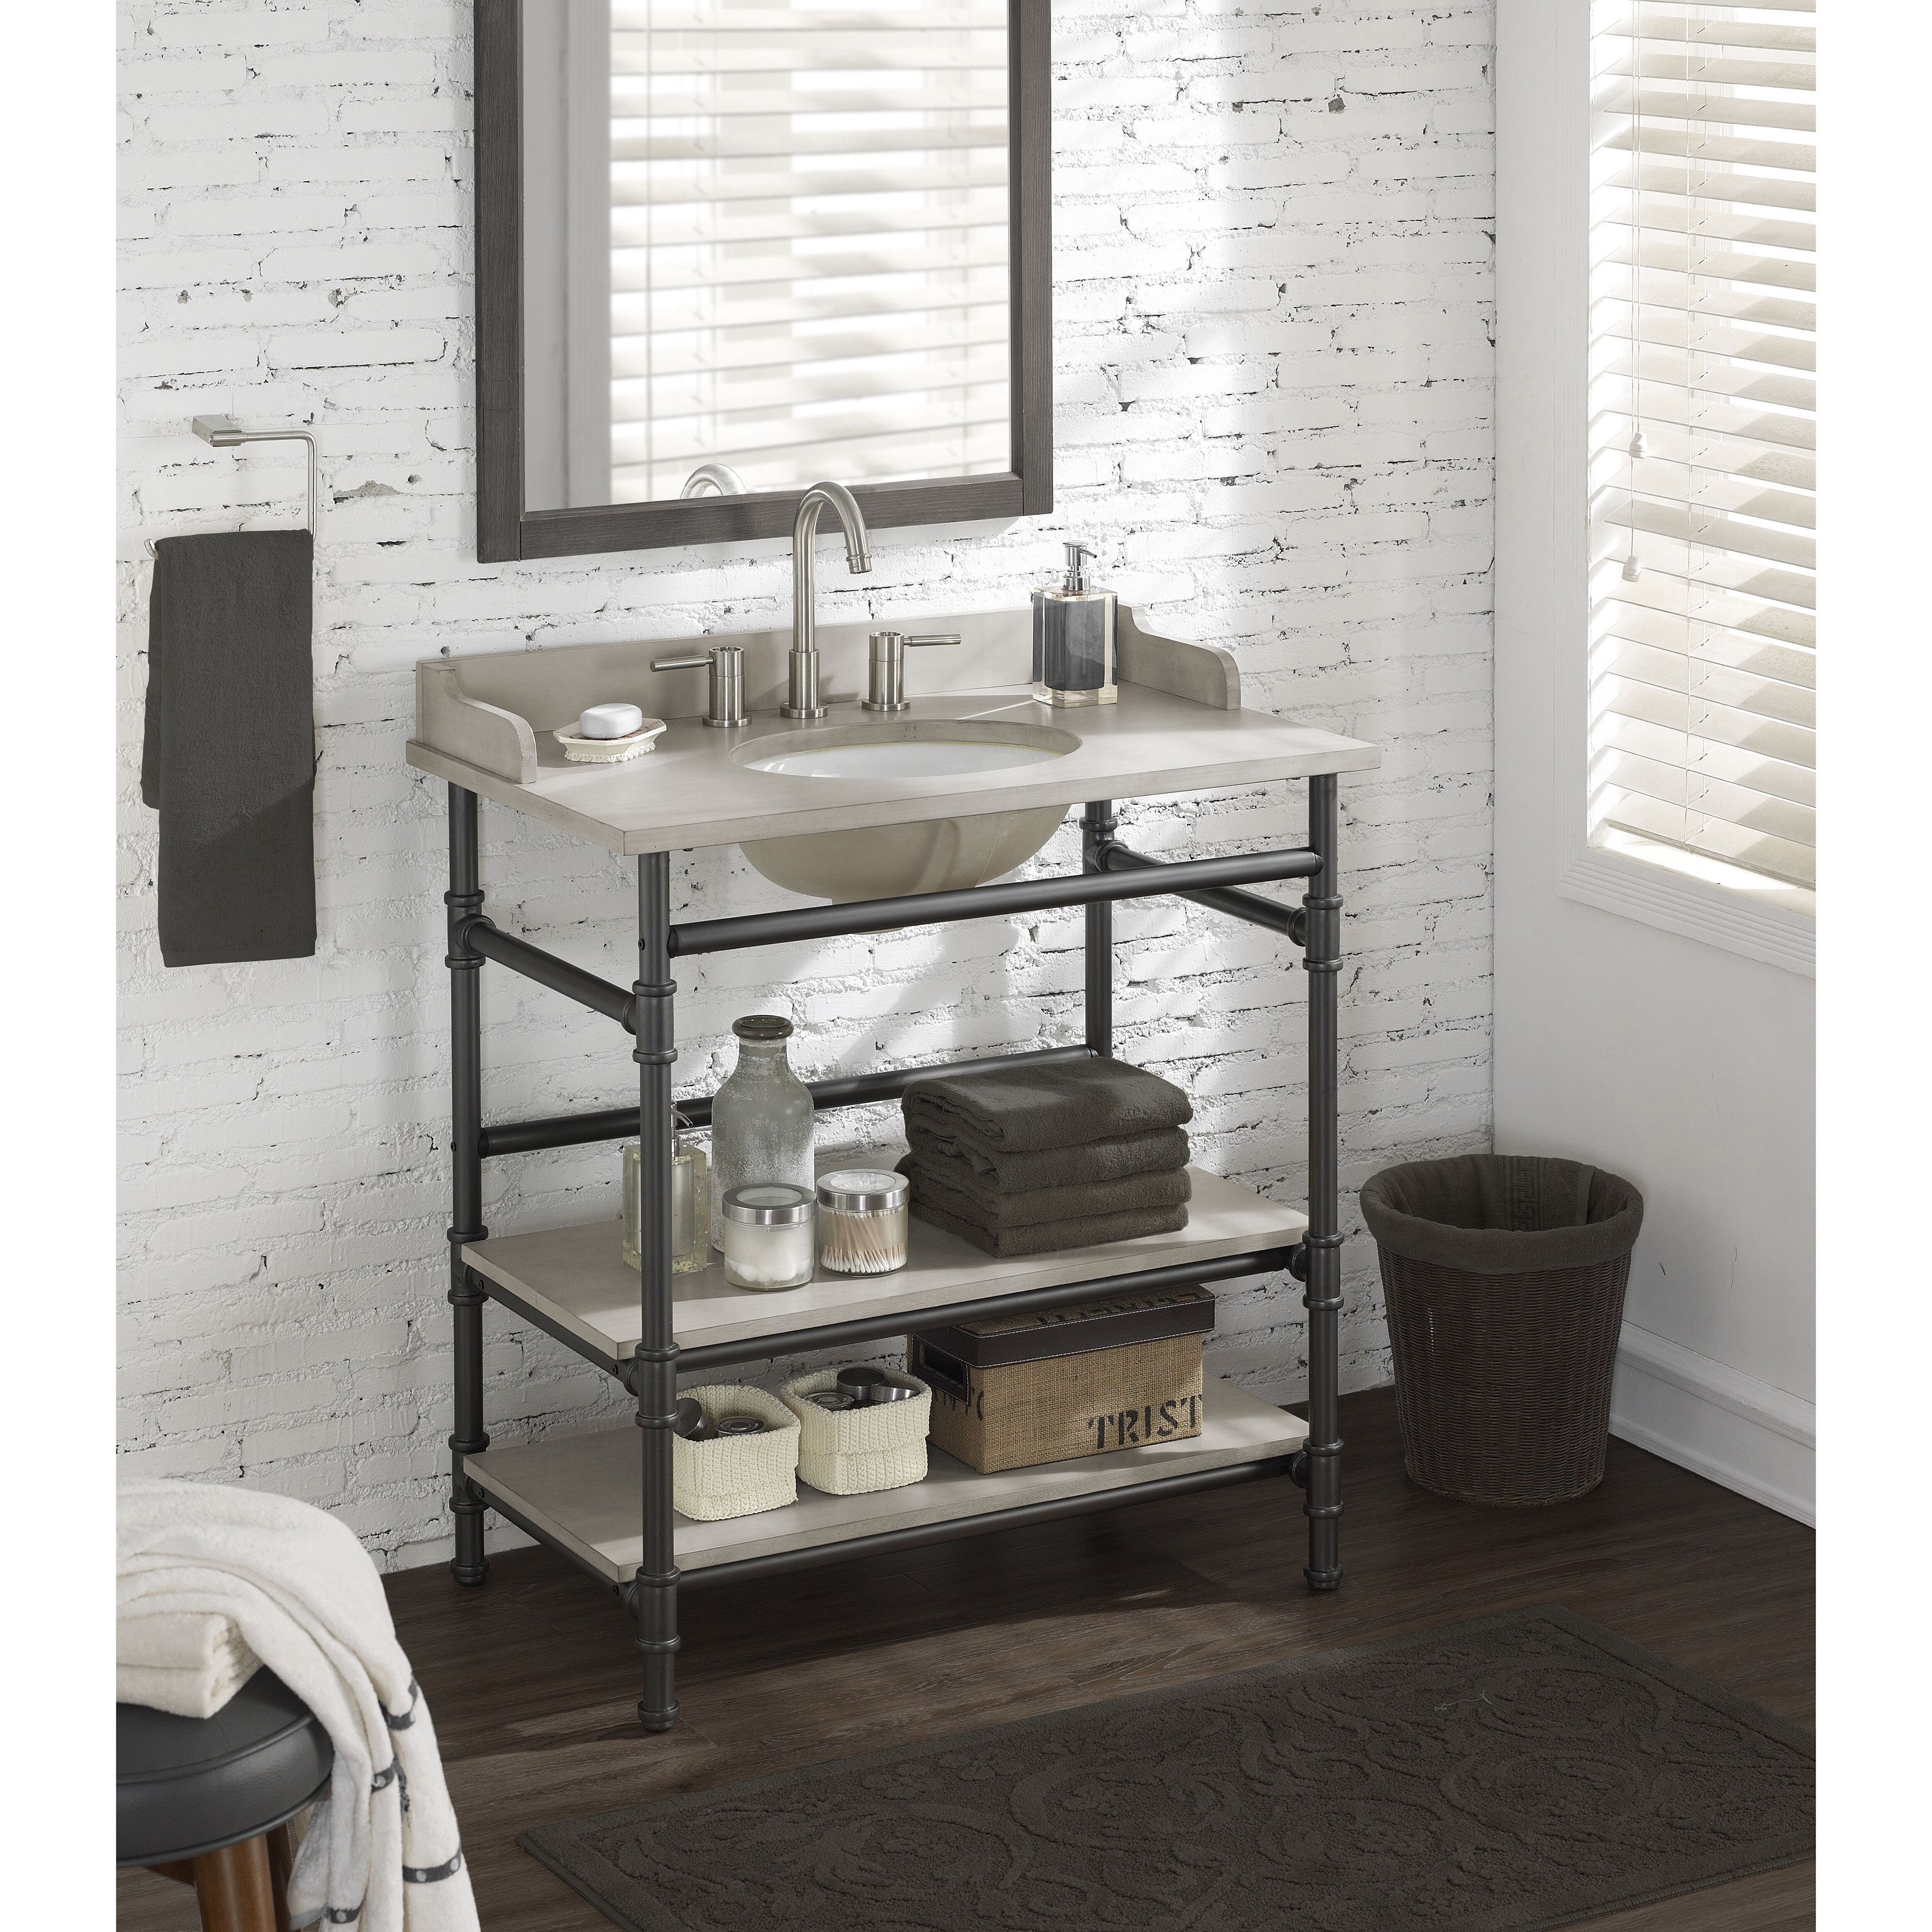 Inch Industrial Open Shelf Vanity with Backsplash 18184006